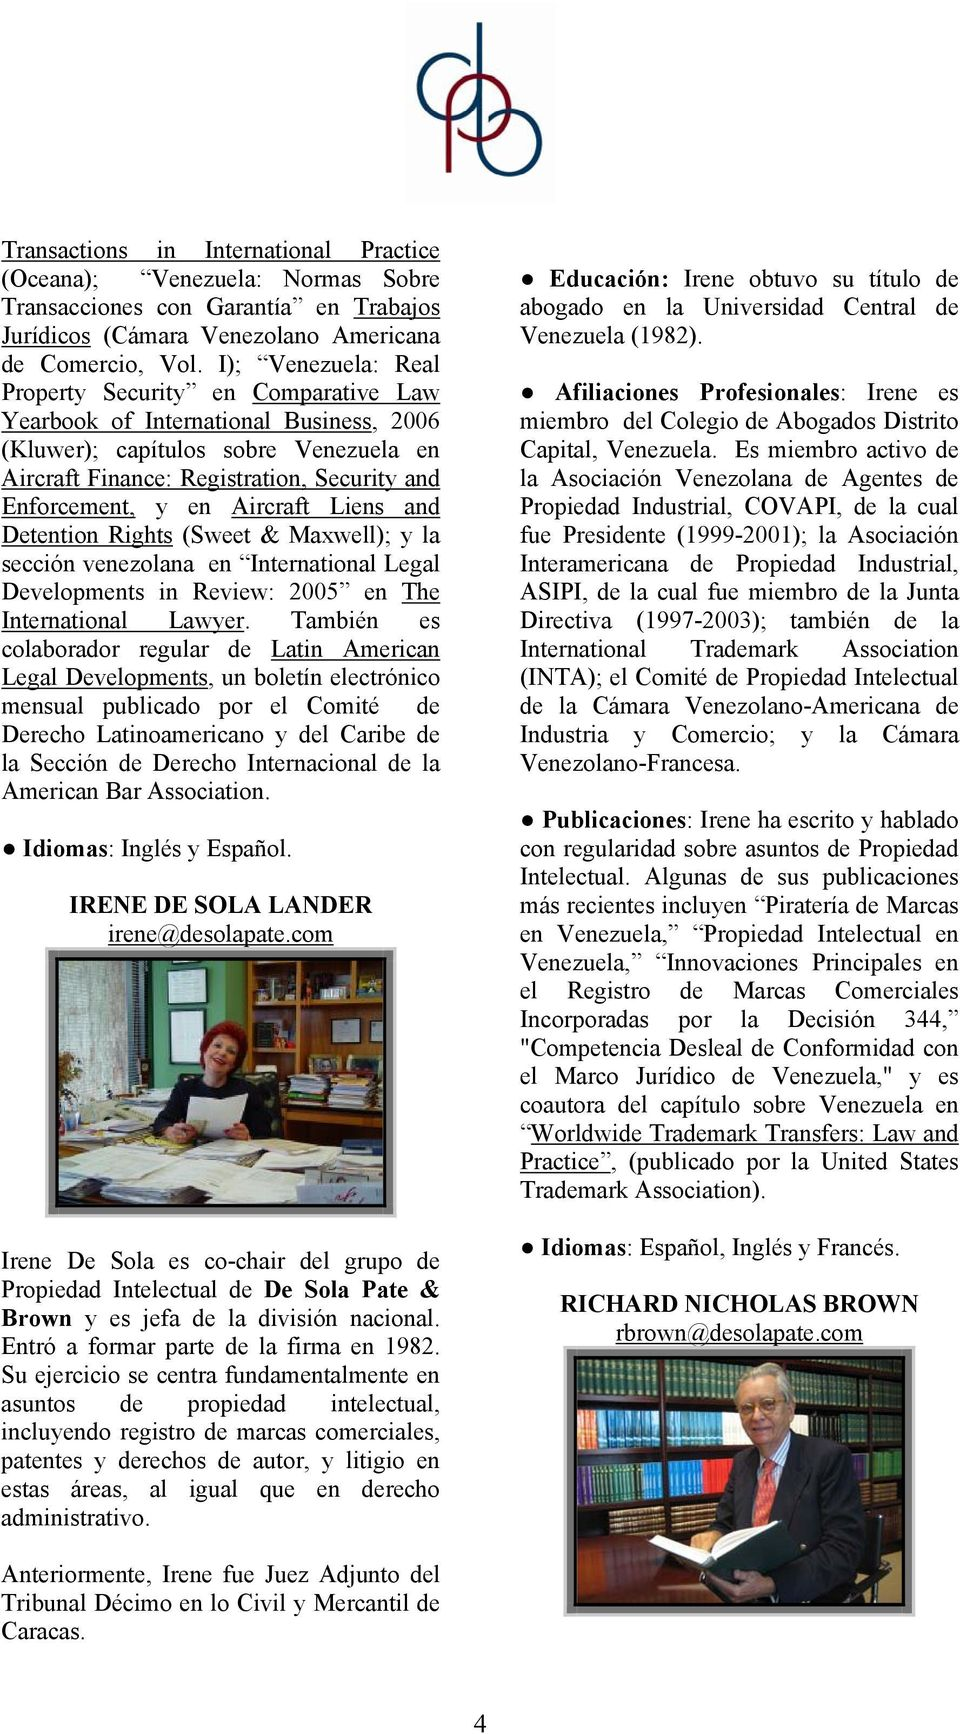 Aircraft Liens and Detention Rights (Sweet & Maxwell); y la sección venezolana en International Legal Developments in Review: 2005 en The International Lawyer.